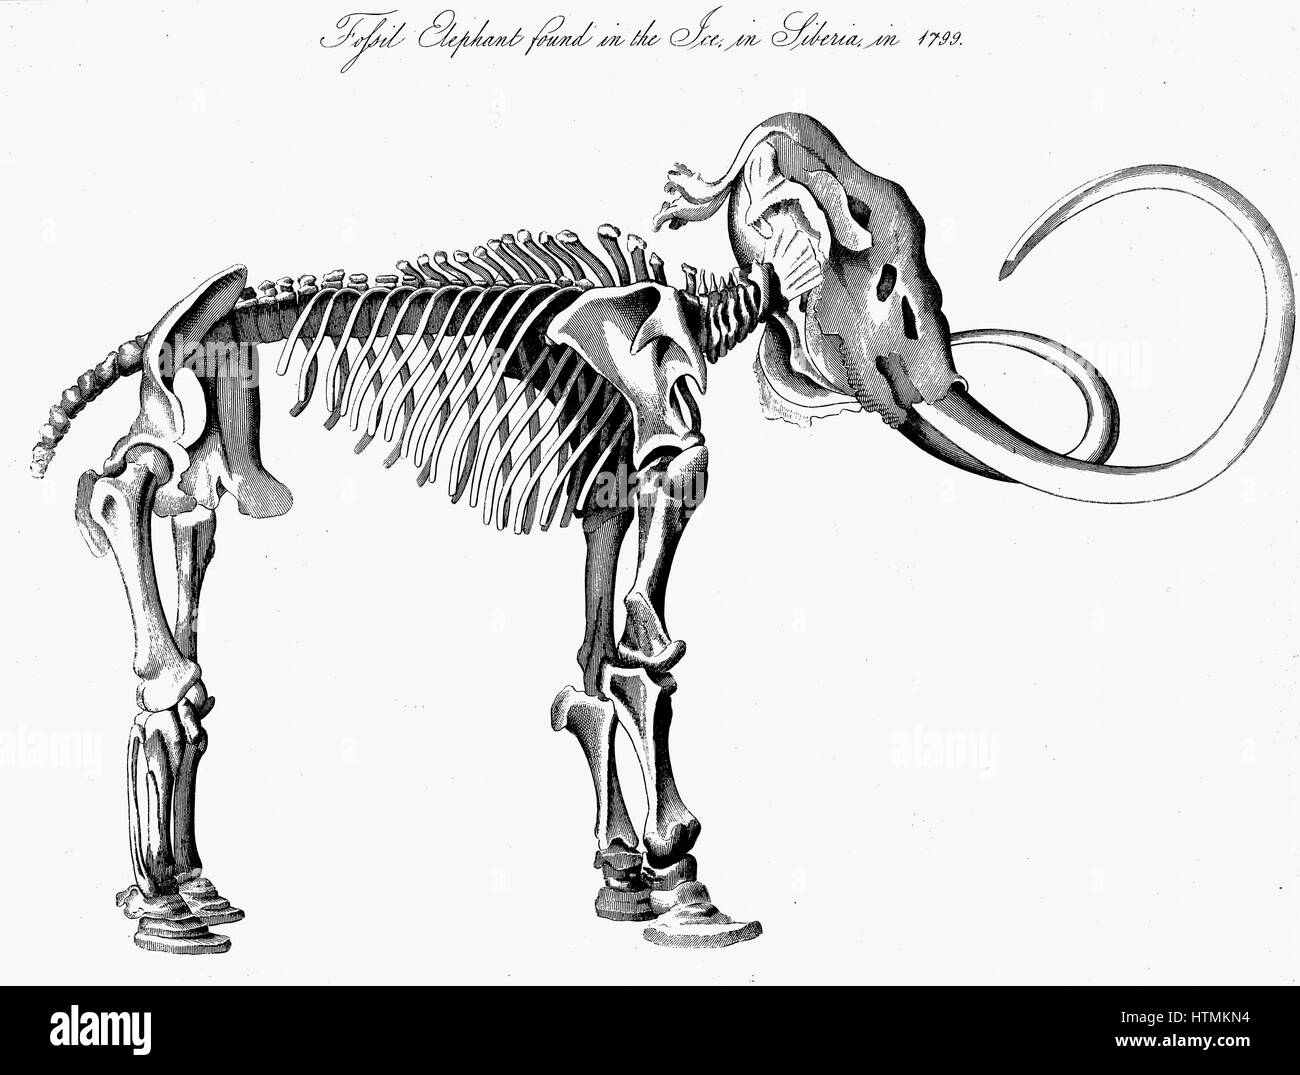 Woolly Mammoth (Mammuthis) skeleton, approximately 3m (9ft) high 5.5m (16ft) long, discovered in the ice in Siberia - Stock Image